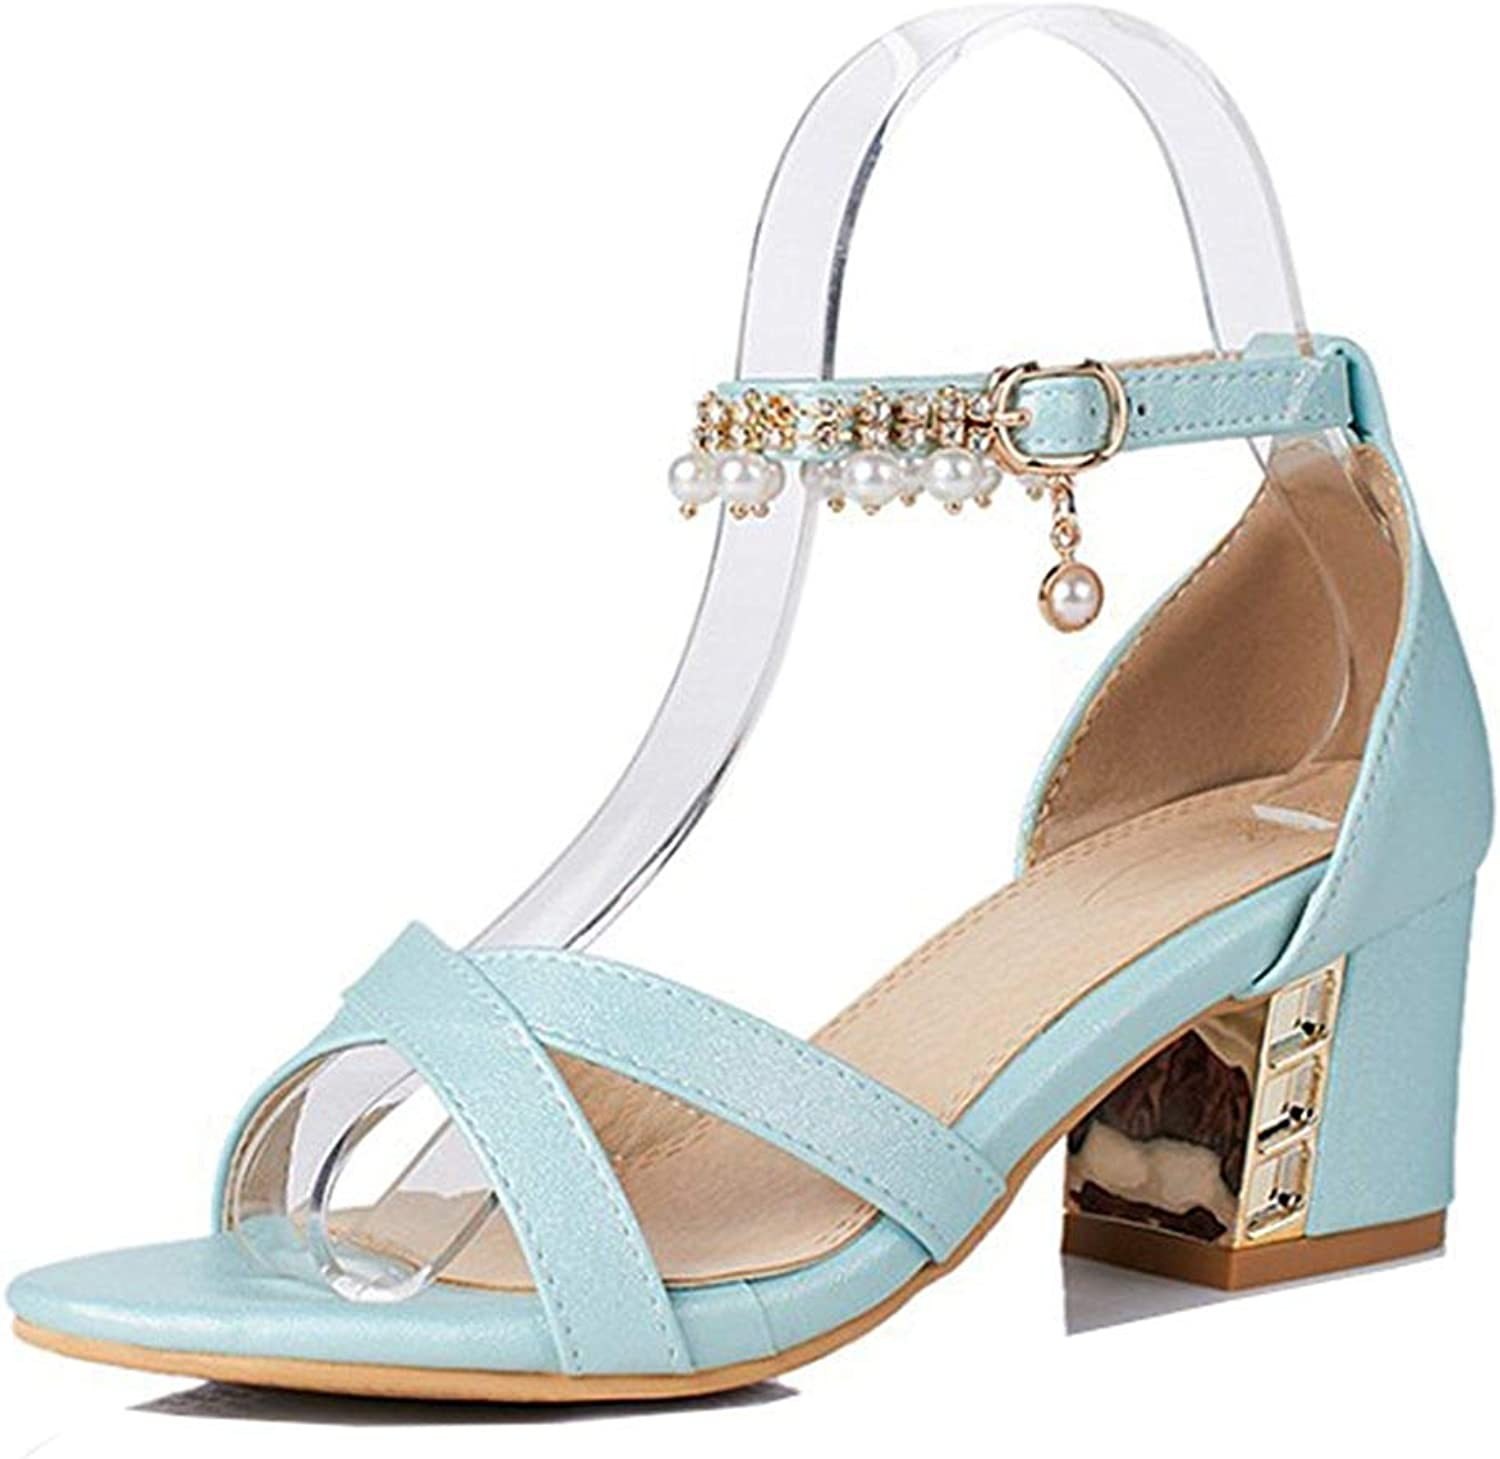 Unm Women's Fashion Beaded Rhinestone Dressy Buckled Medium Block Heel Open Toe Sandals with Ankle Strap